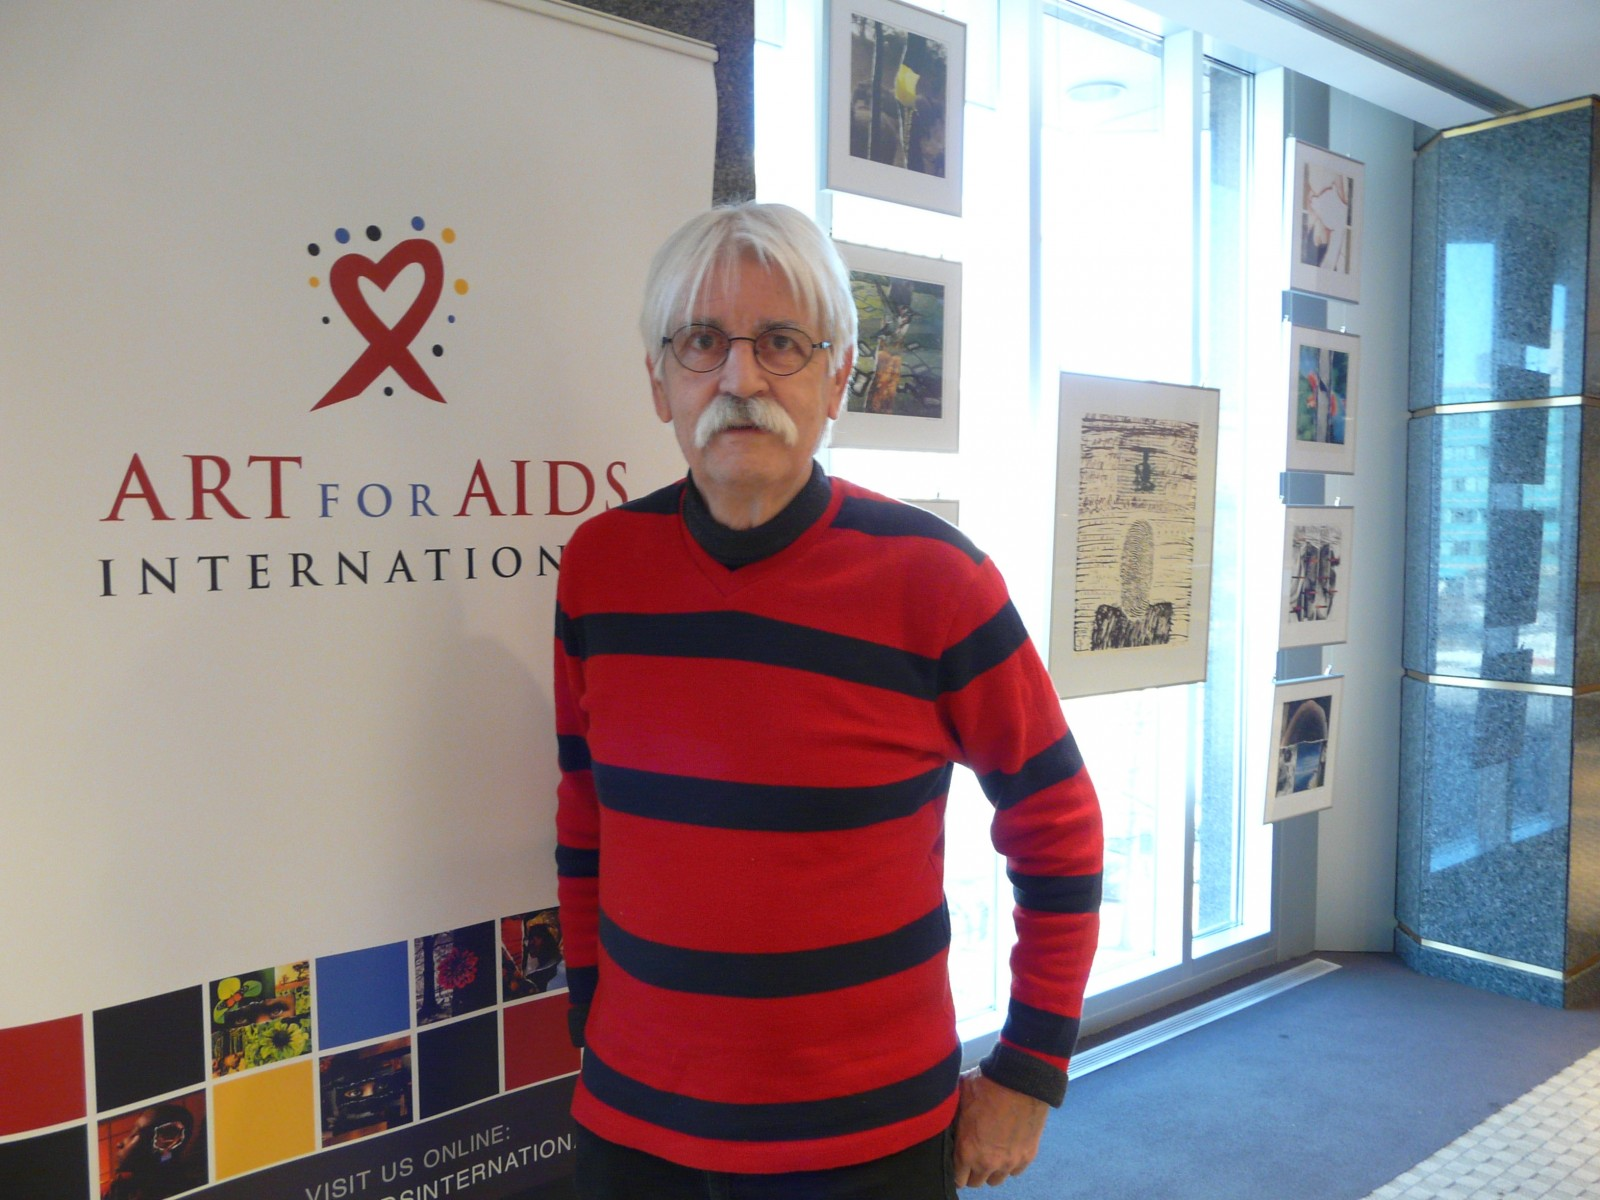 Arts for Aids International